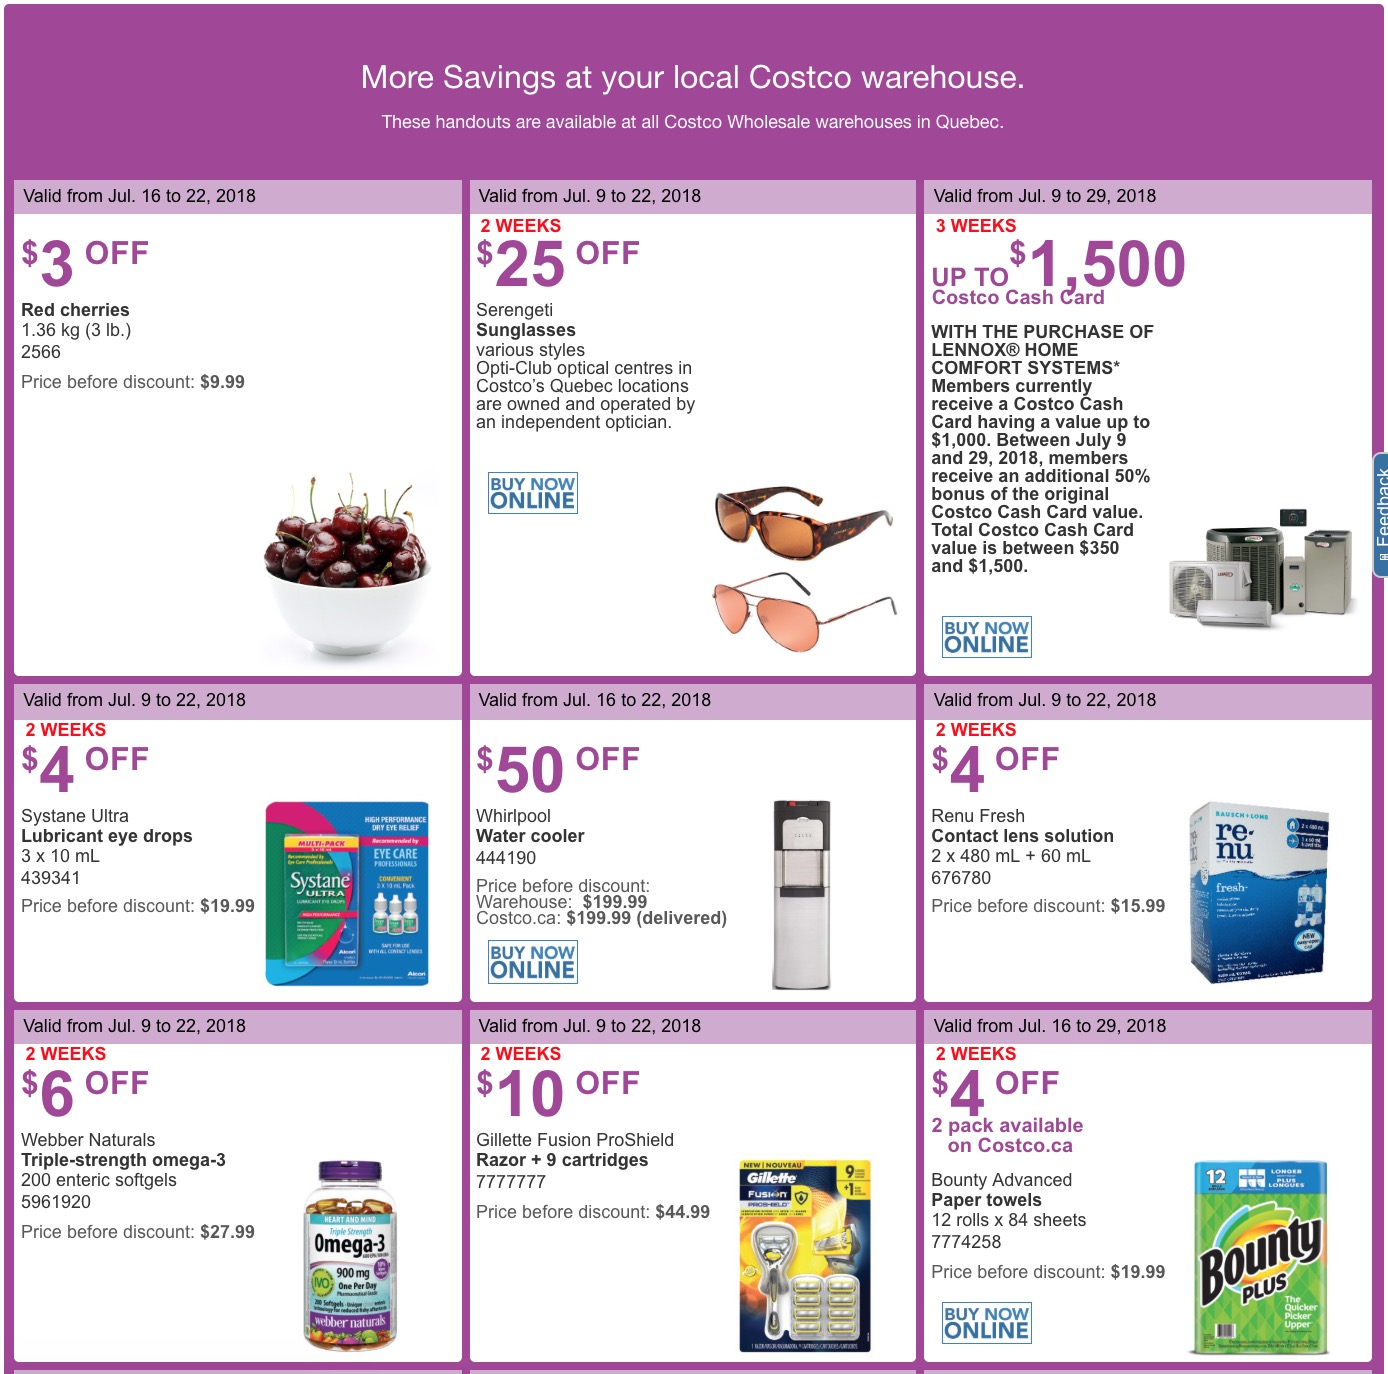 0e762b1cc9 These handouts are valid at Costco warehouses in Quebec. Costco Quebec  handouts are valid from July 16